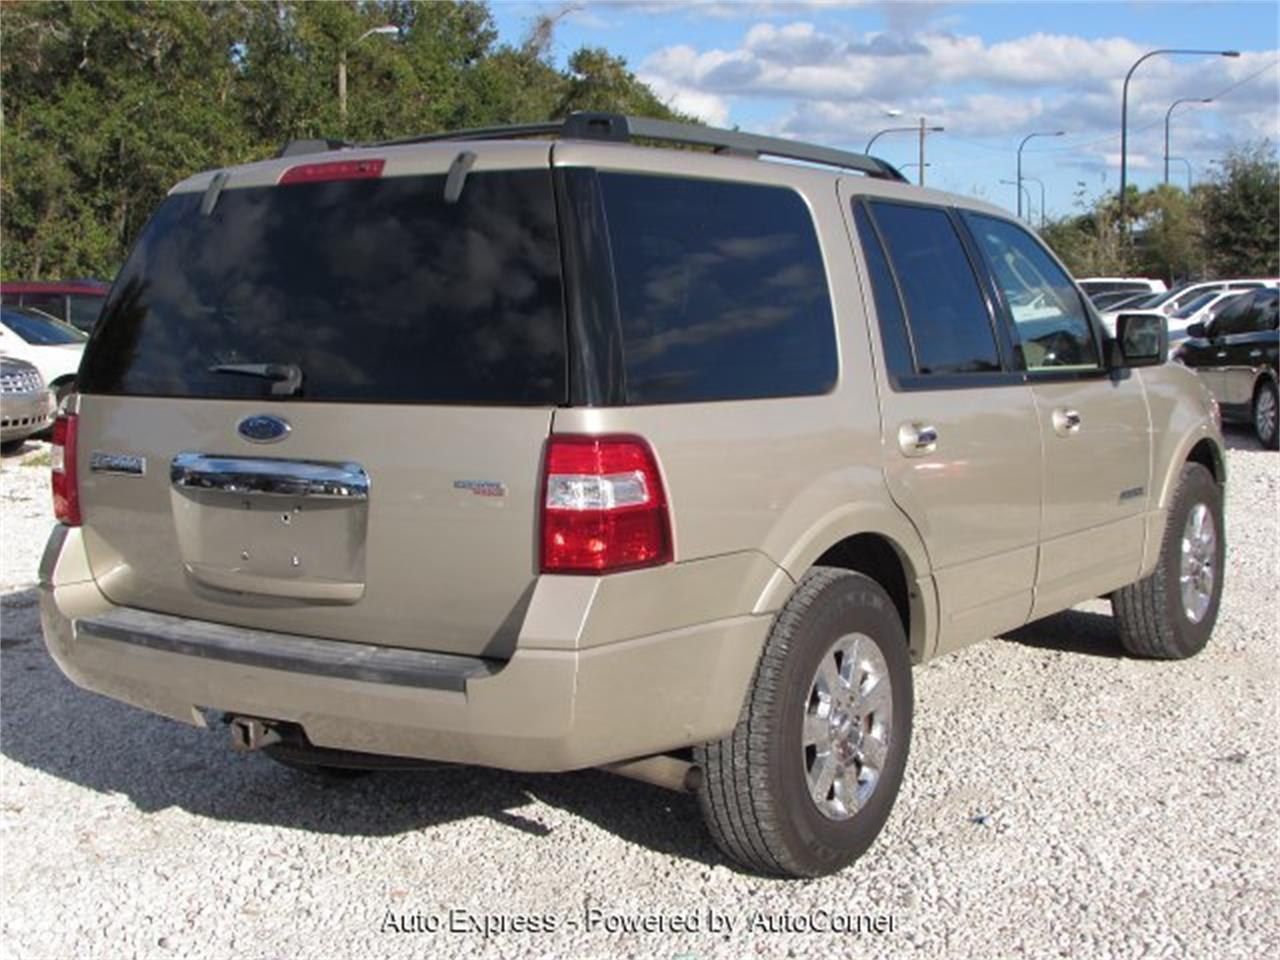 2008 Ford Expedition for sale in Orlando, FL – photo 7